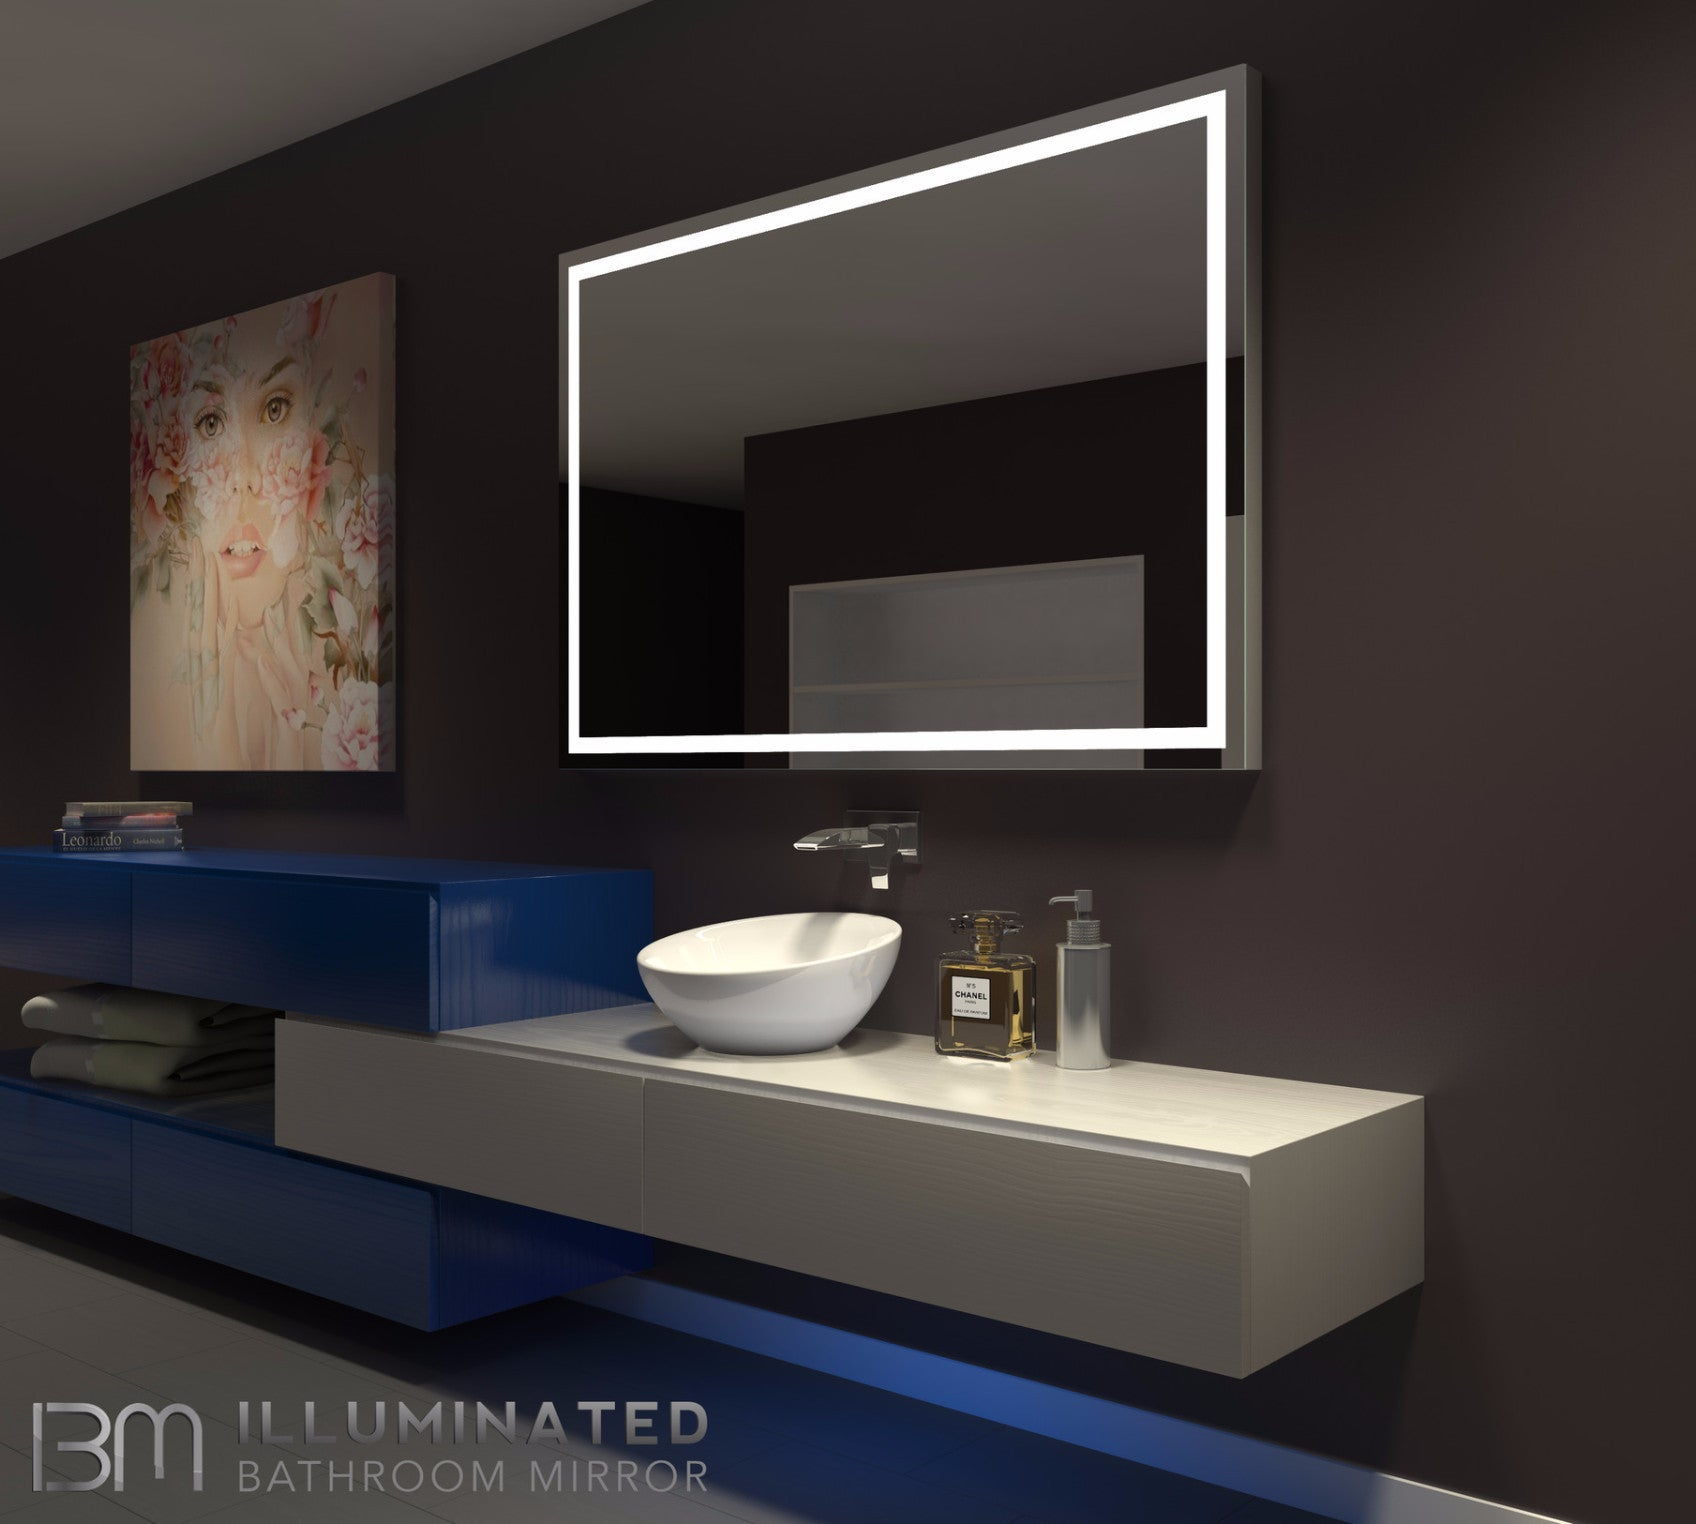 Dimmable lighted mirror harmony 60 x 40 ib mirror dimmable lighted mirror harmony 60 x 40 amipublicfo Image collections